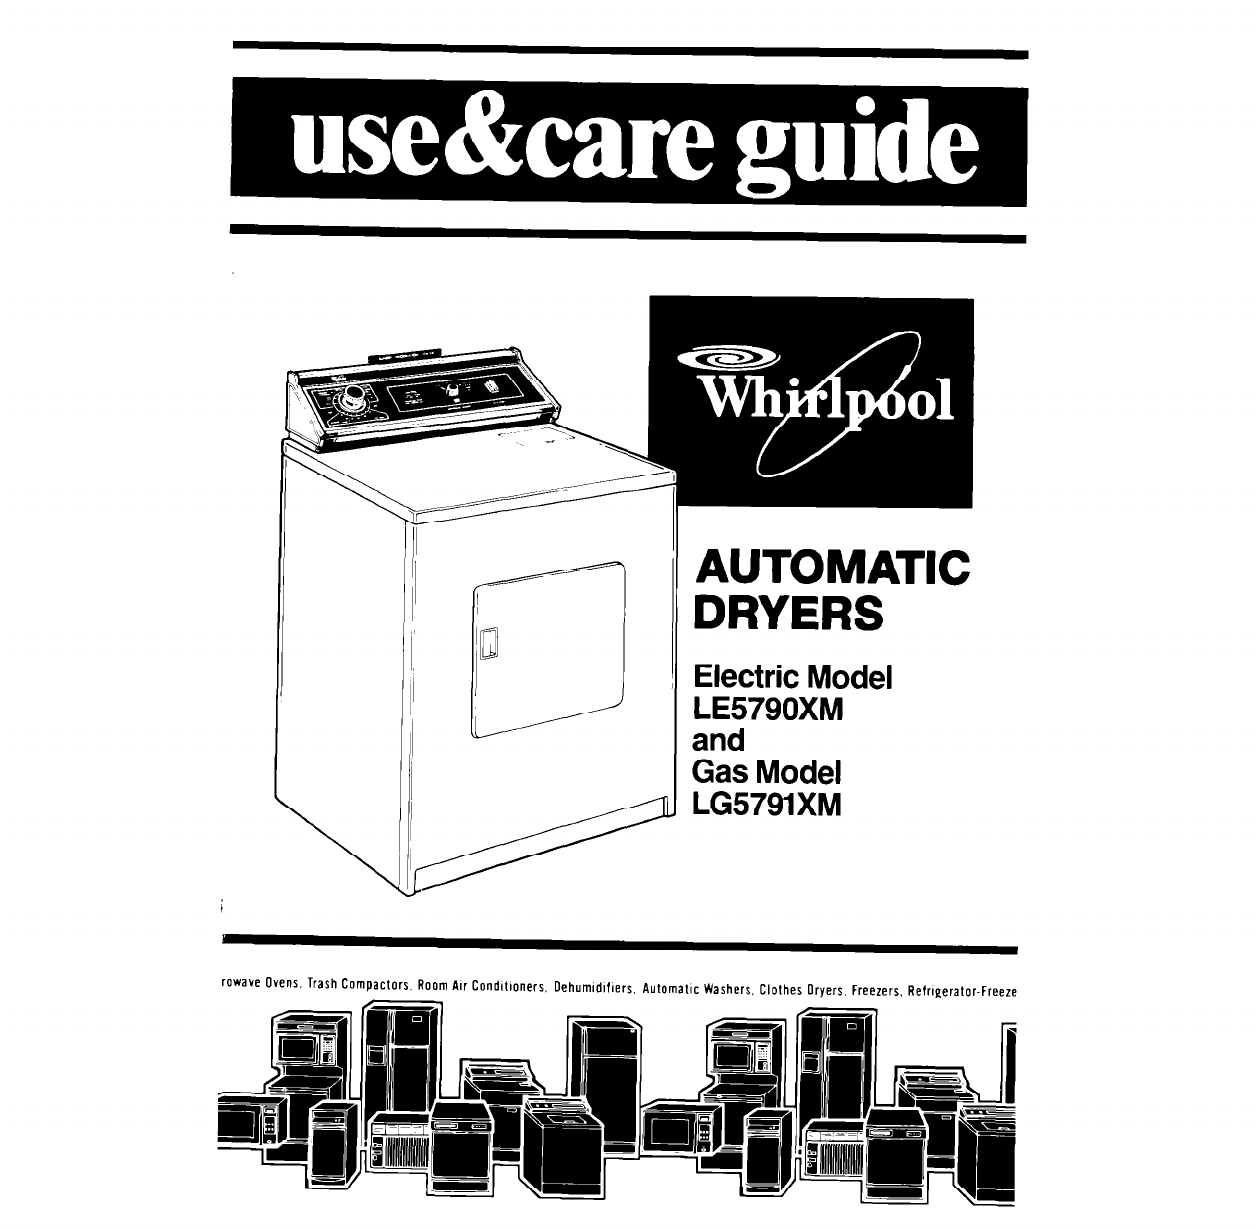 whirlpool clothes dryer le5790xm lg5791xm user guide rh laundry manualsonline com rca whirlpool refrigerator manual RCA Refrigerator Troubleshooting